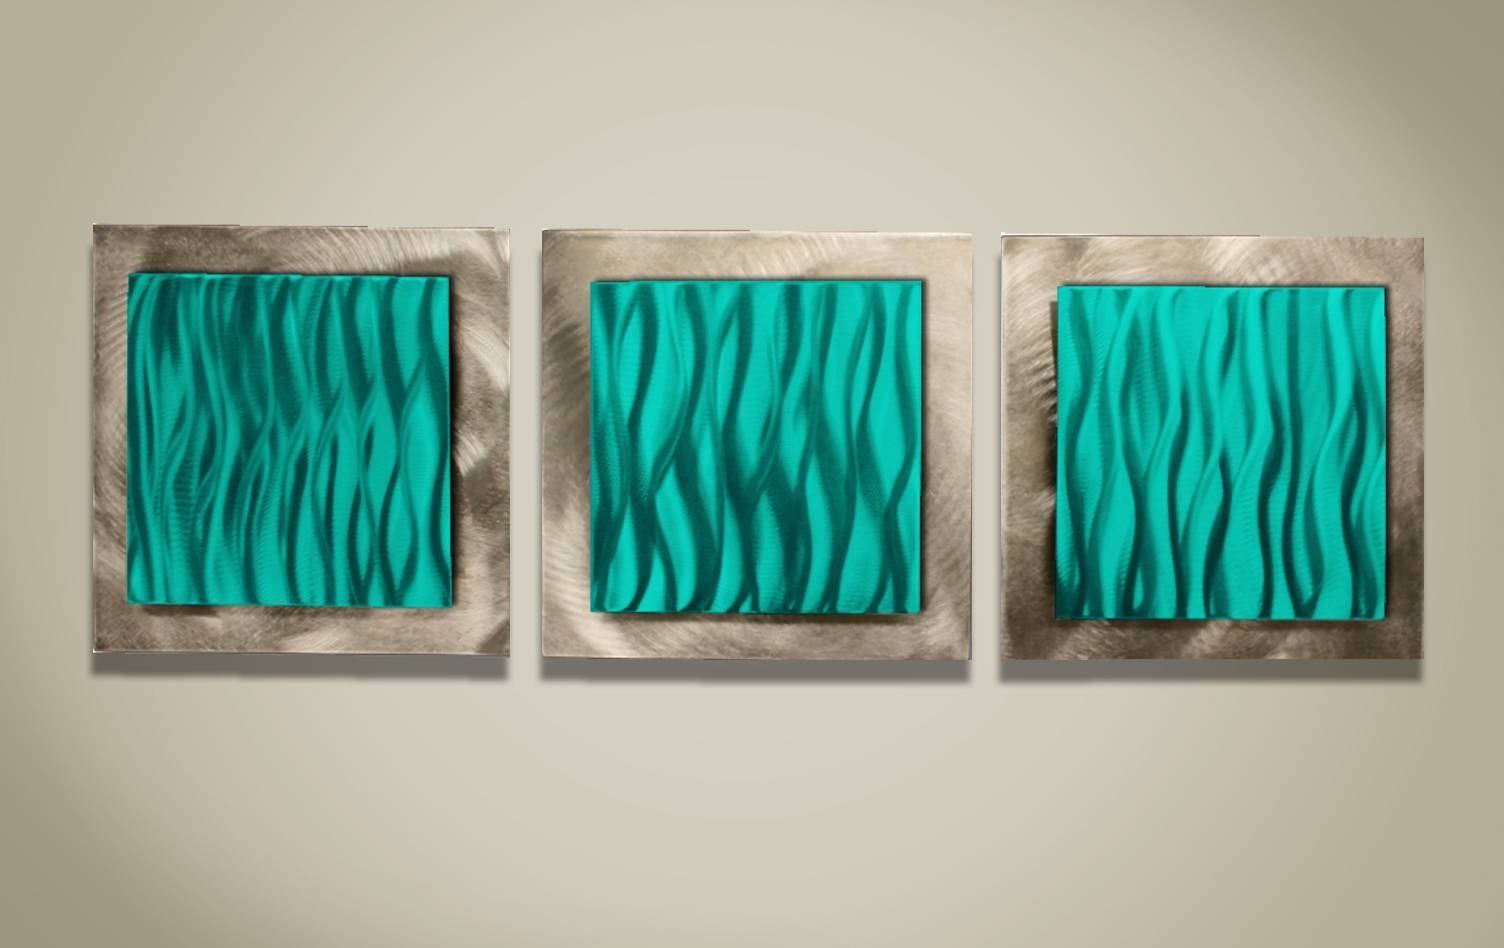 Teal Kitchen, Turquoise Metal Wall Art Decorative Metal Wall Art With Regard To Most Up To Date Teal Metal Wall Art (View 6 of 20)